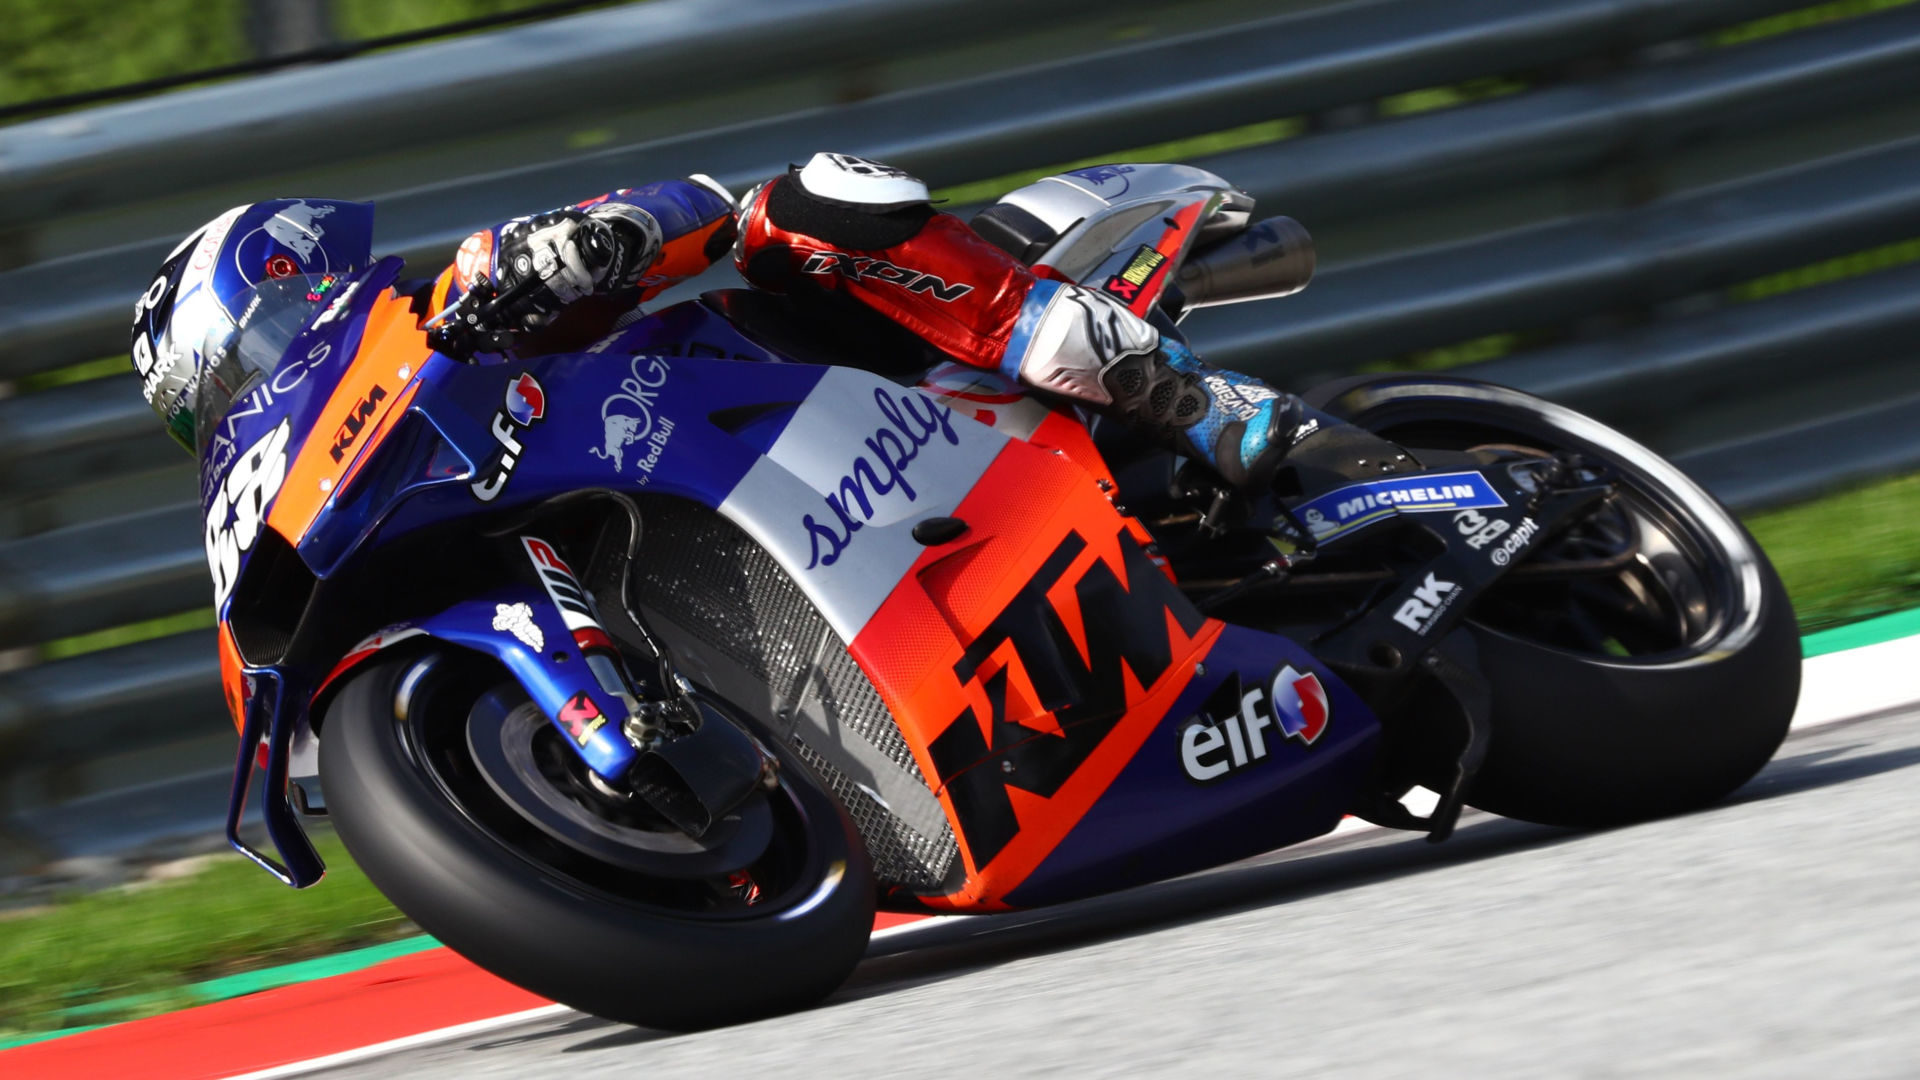 Motogp Oliveira Expects To Continue Fighting For Top Positions Roadracing World Magazine Motorcycle Riding Racing Tech News